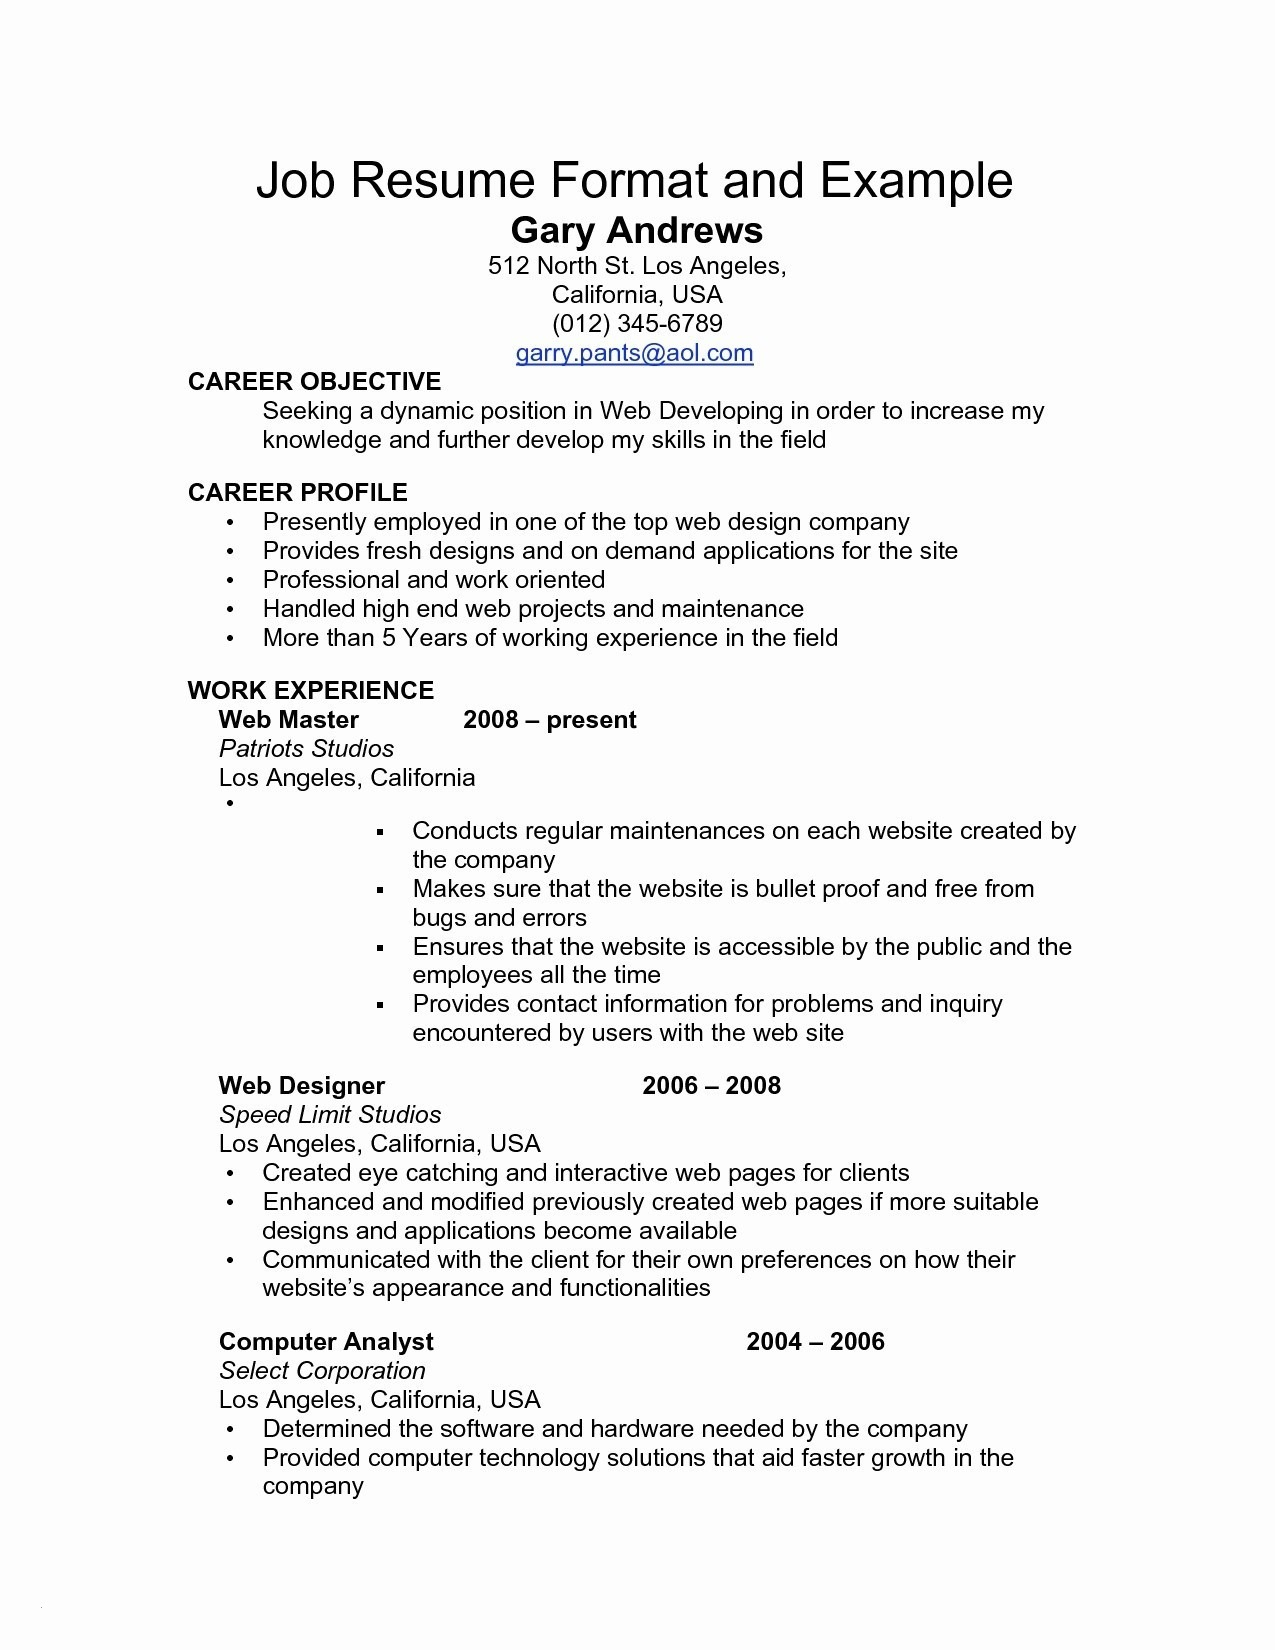 Update My Resume - Interactive Resume Paragraphrewriter